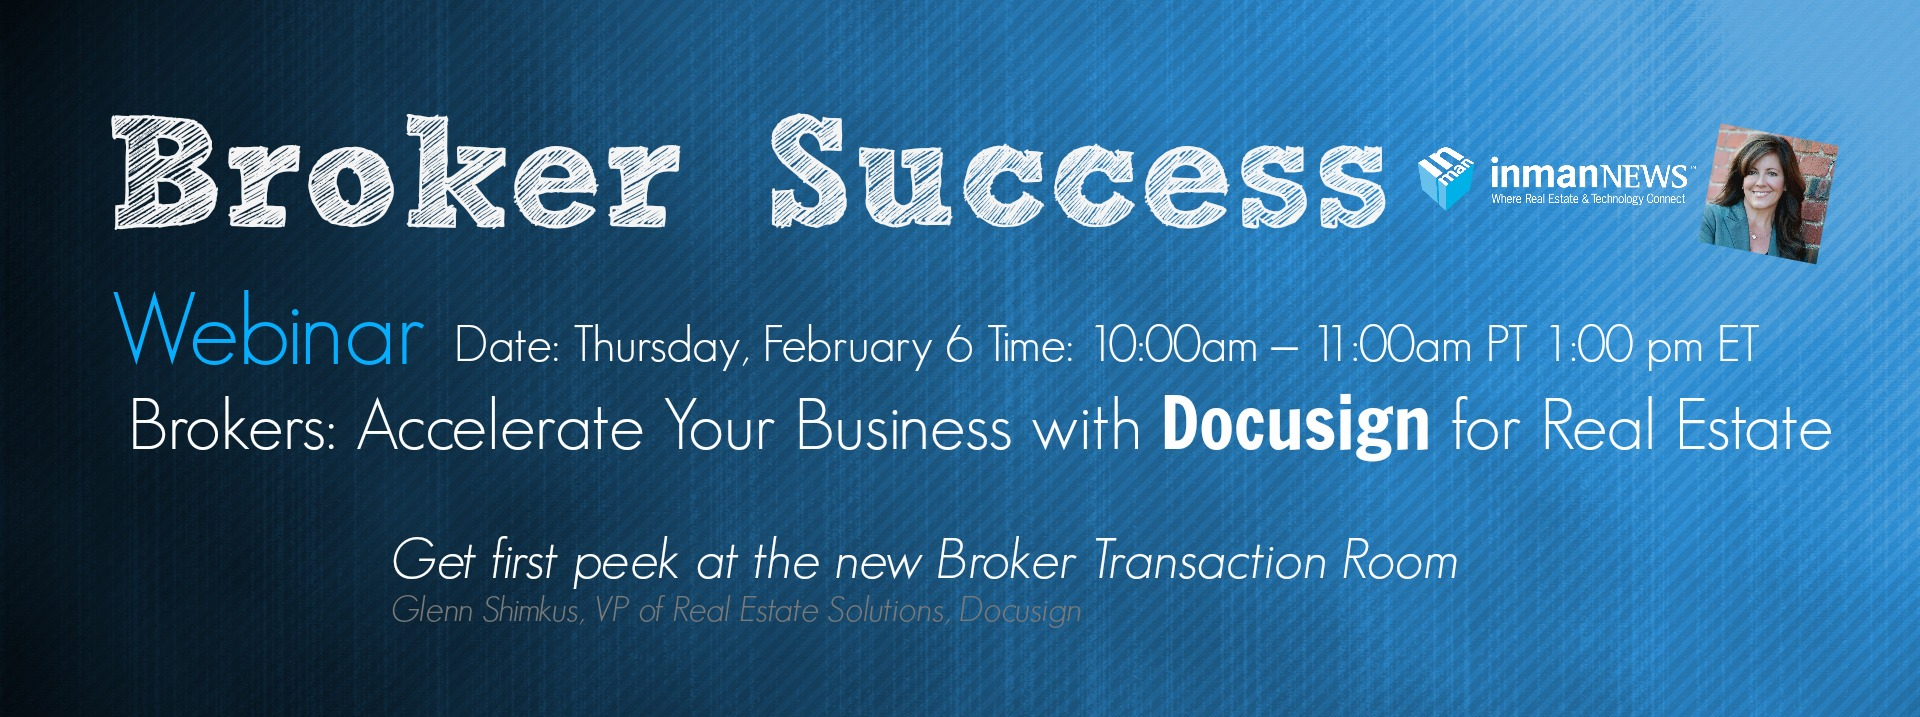 Brokers, it's time to accelerate your business with DocuSign [webinar recording]